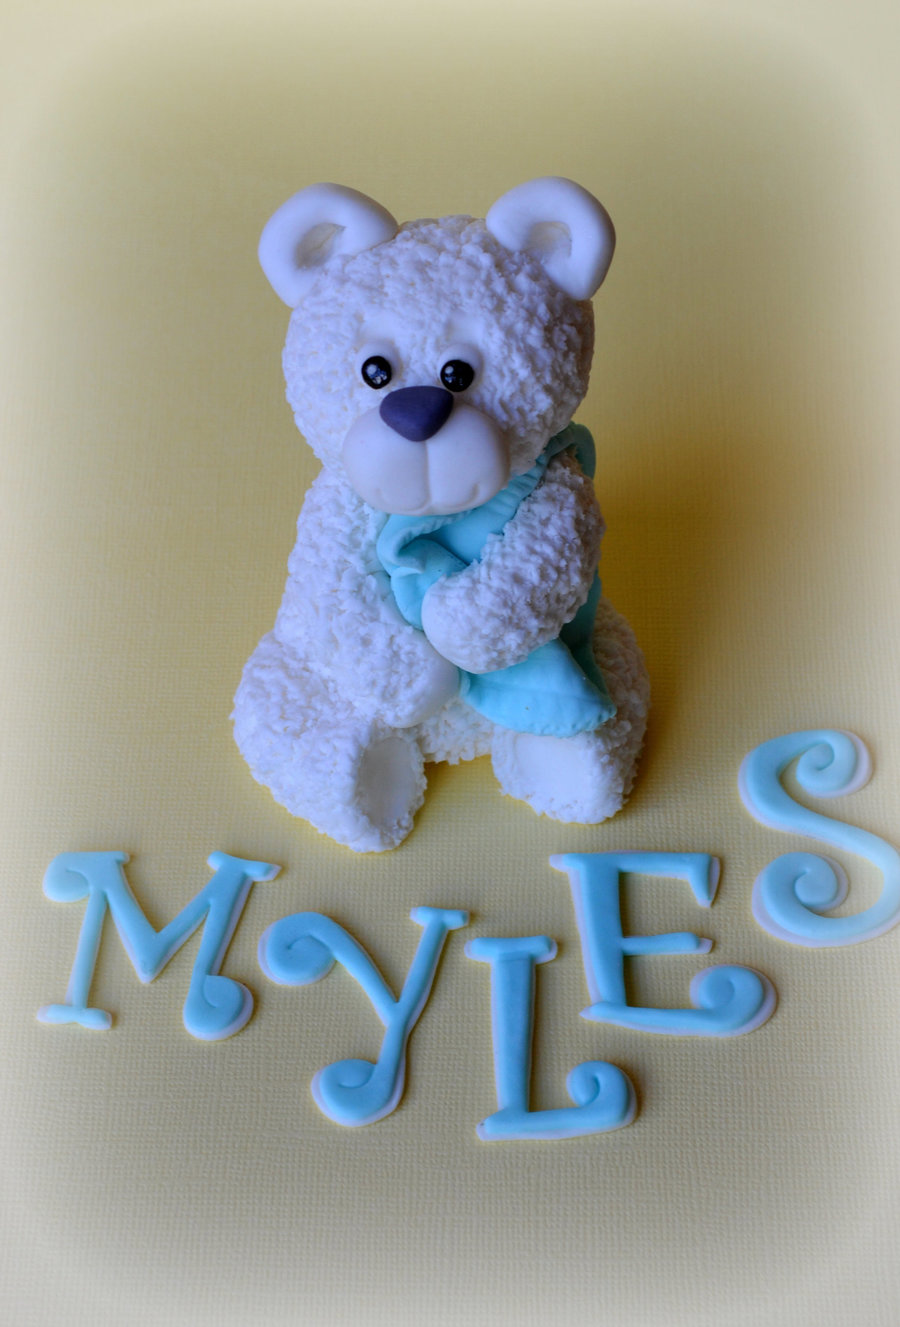 Little Edible Bear Made From Fondant And Cmc Was For A 1St Birthday Cakethe Mum Wanted To Make The Cake Herself But Just Wanted A Littl  on Cake Central